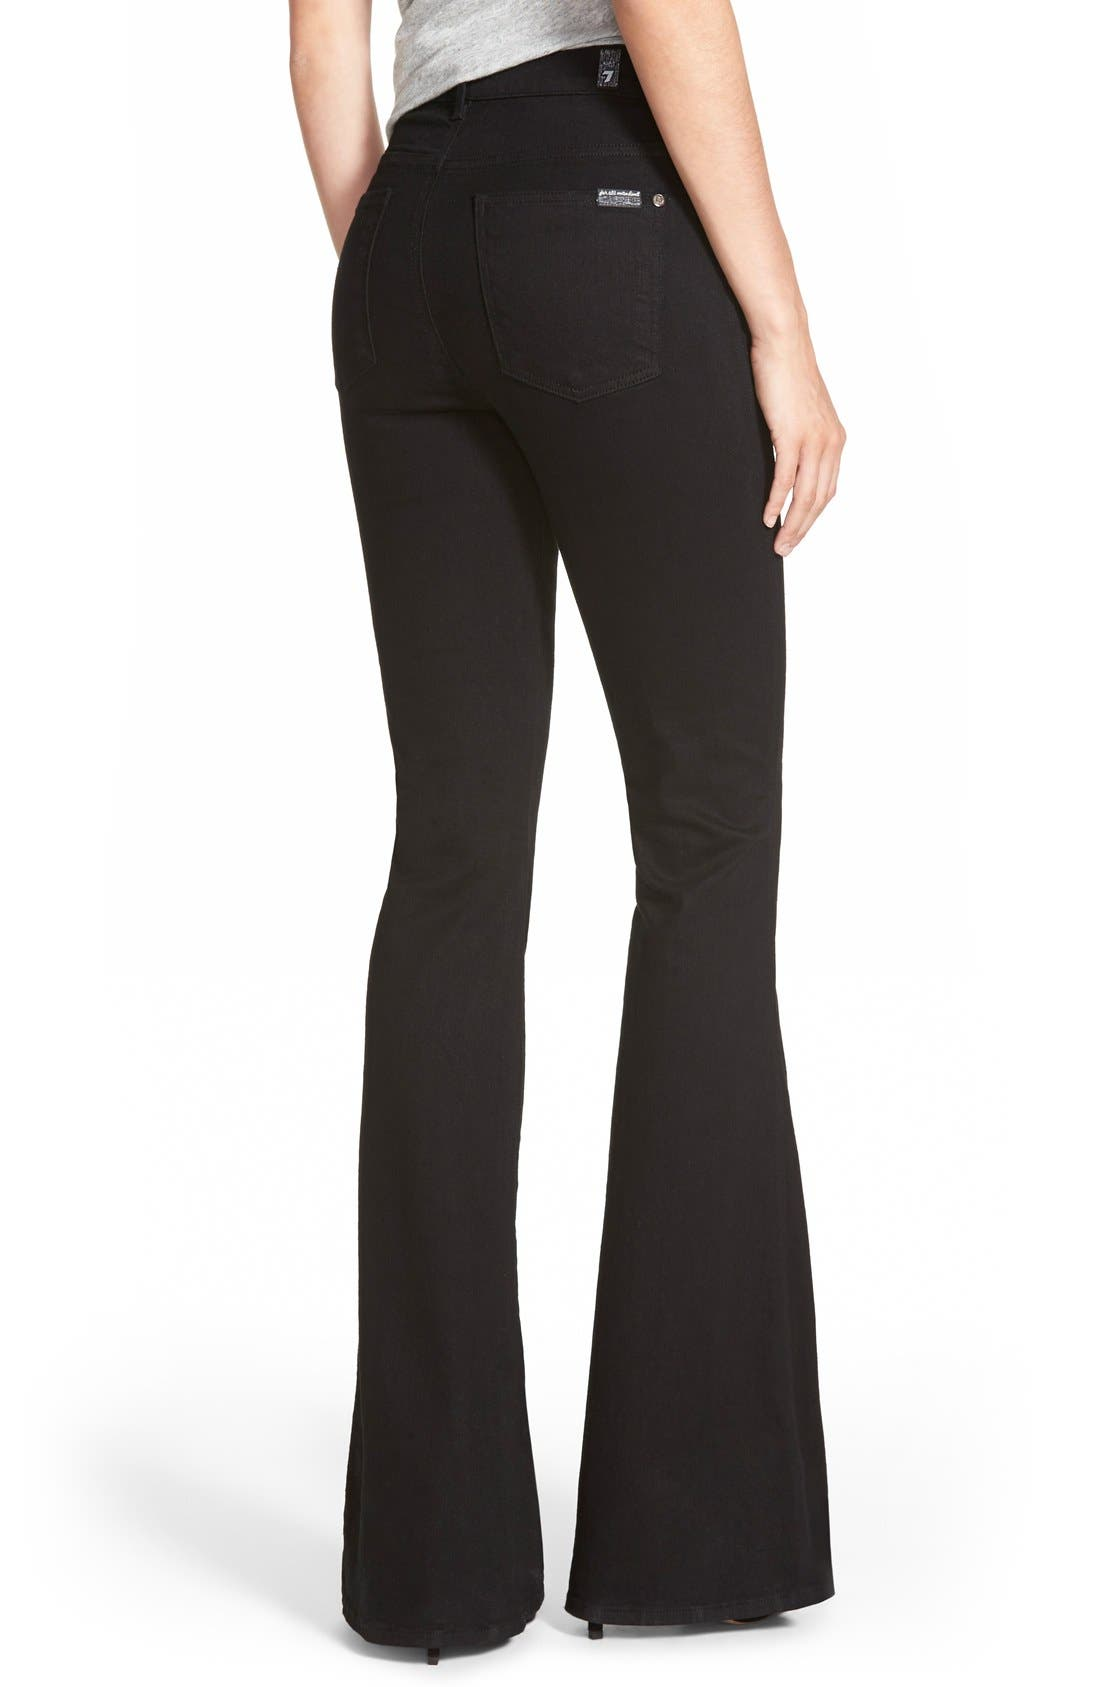 Alternate Image 2  - 7 For All Mankind® High Rise Flare Jeans (Overdyed Black)